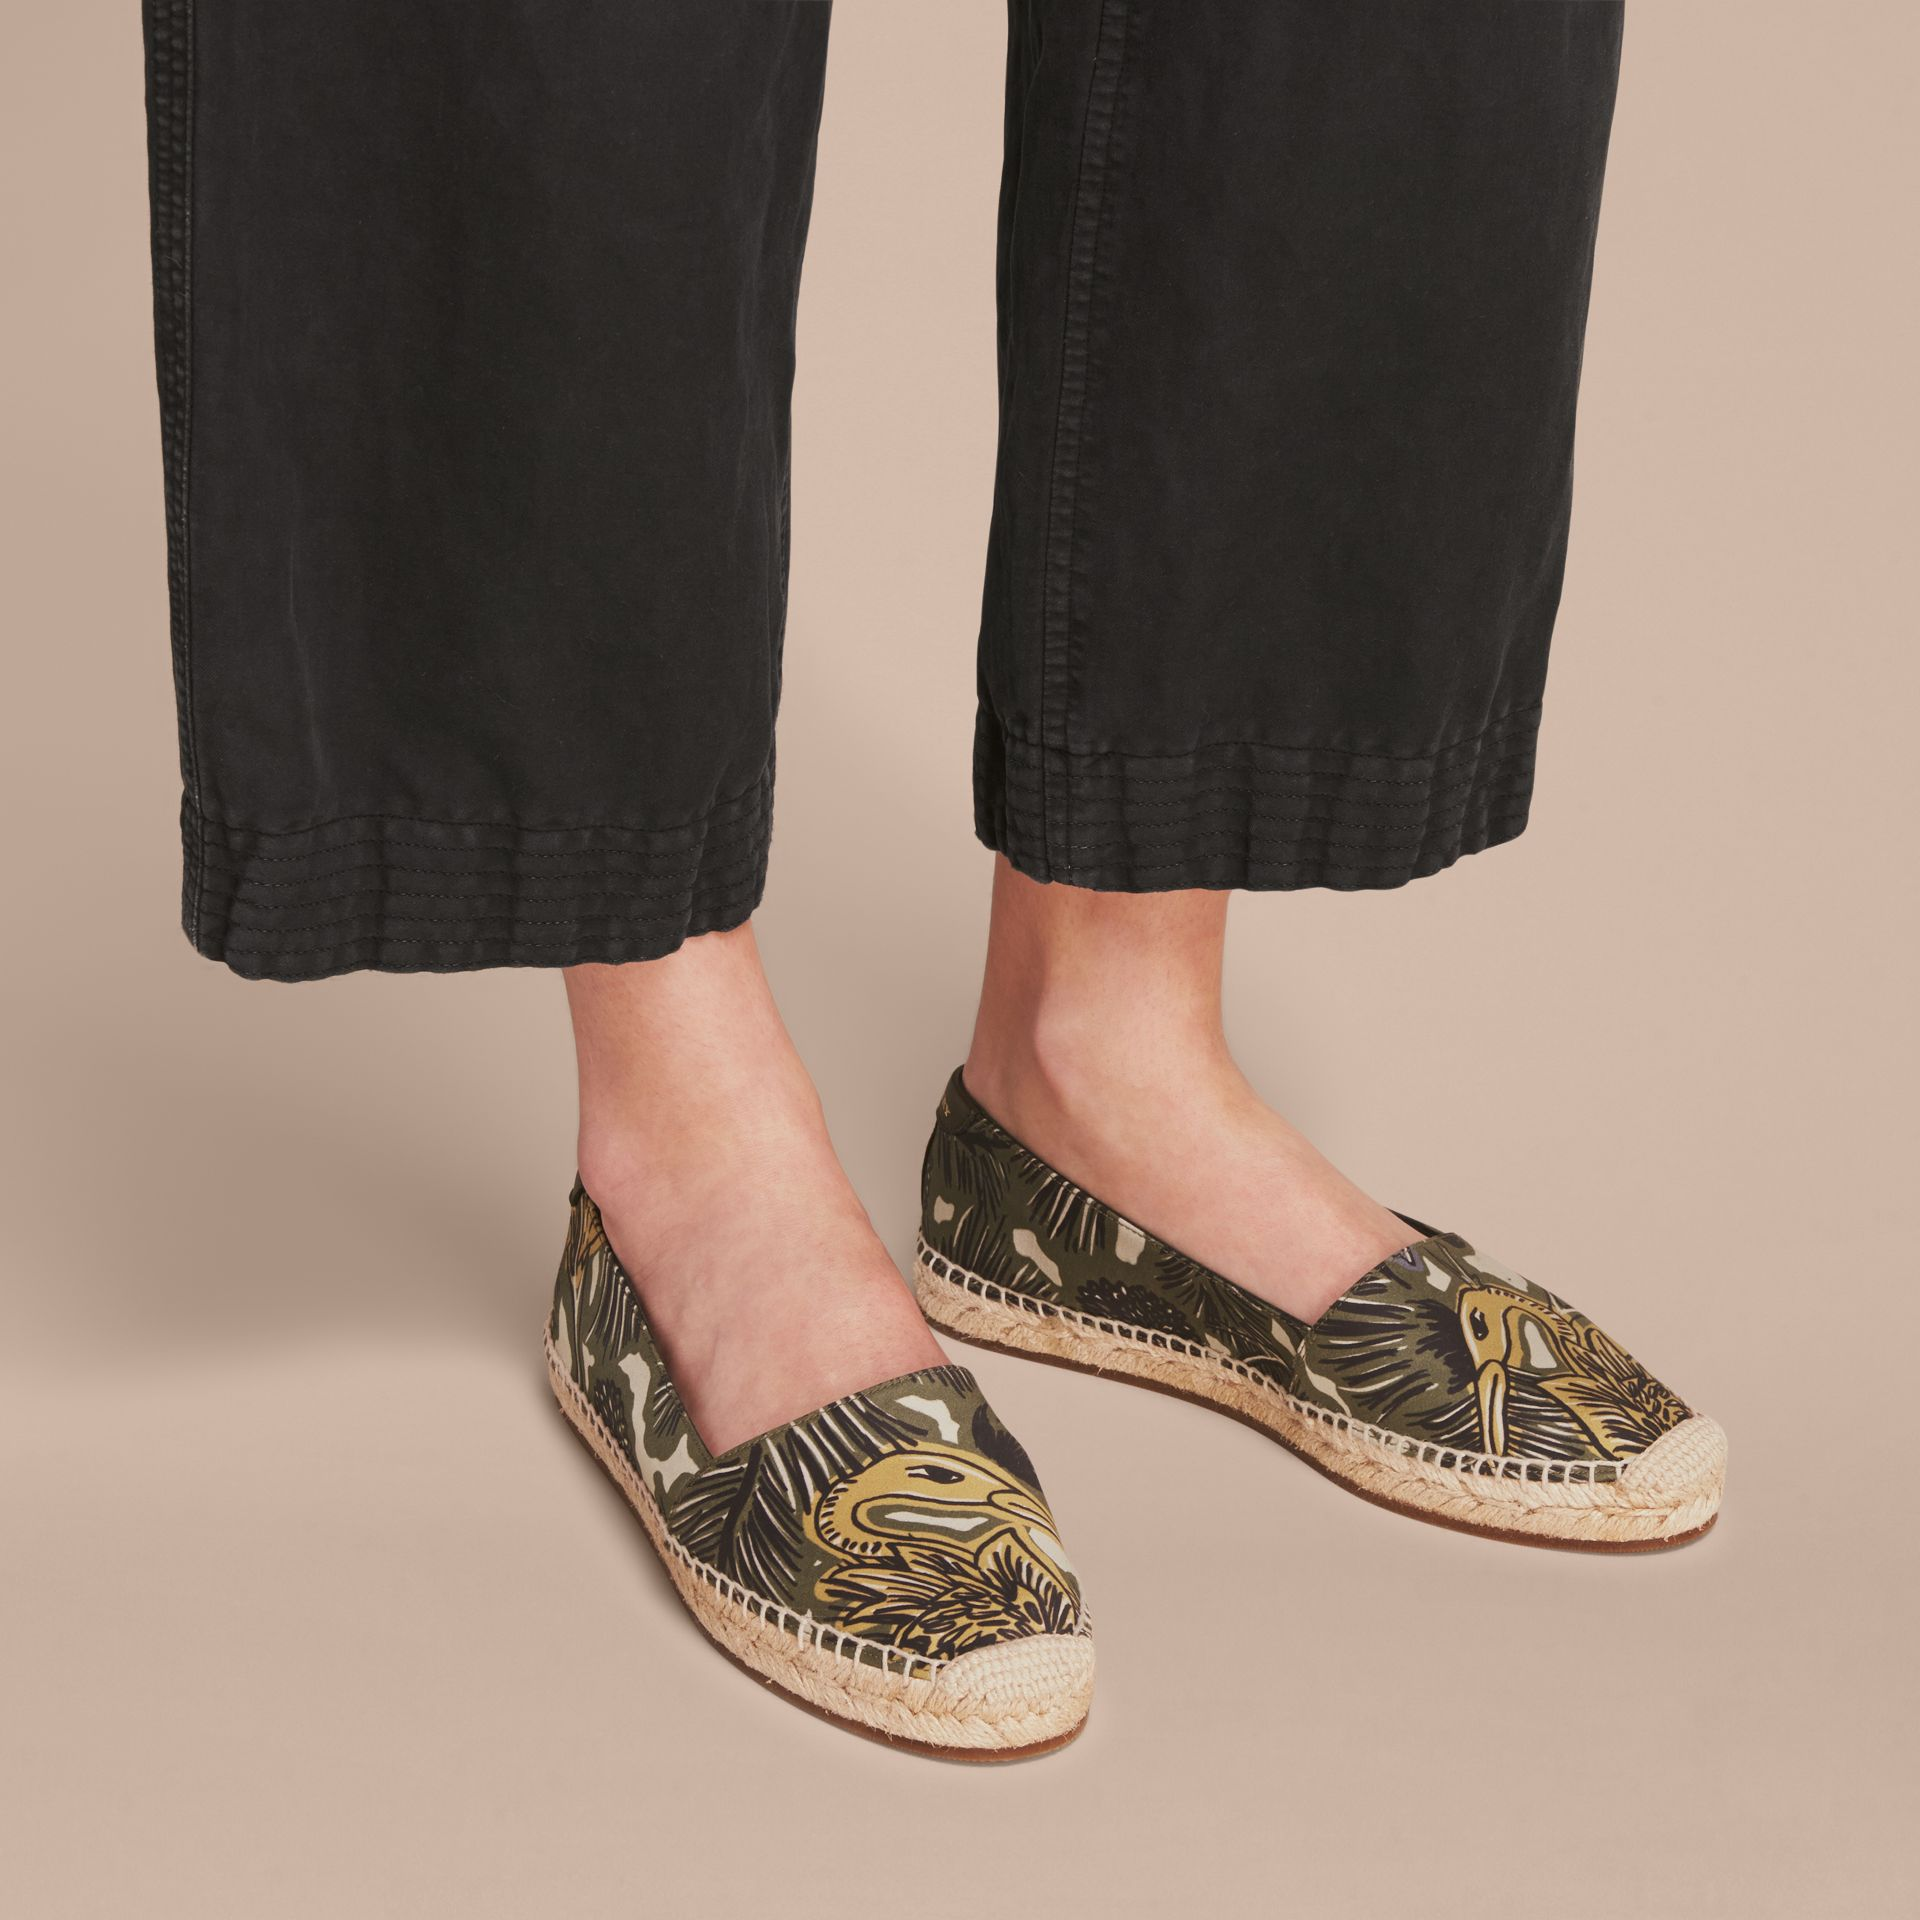 Beasts Print Cotton Blend Espadrilles in Clay Green - Women | Burberry - gallery image 3